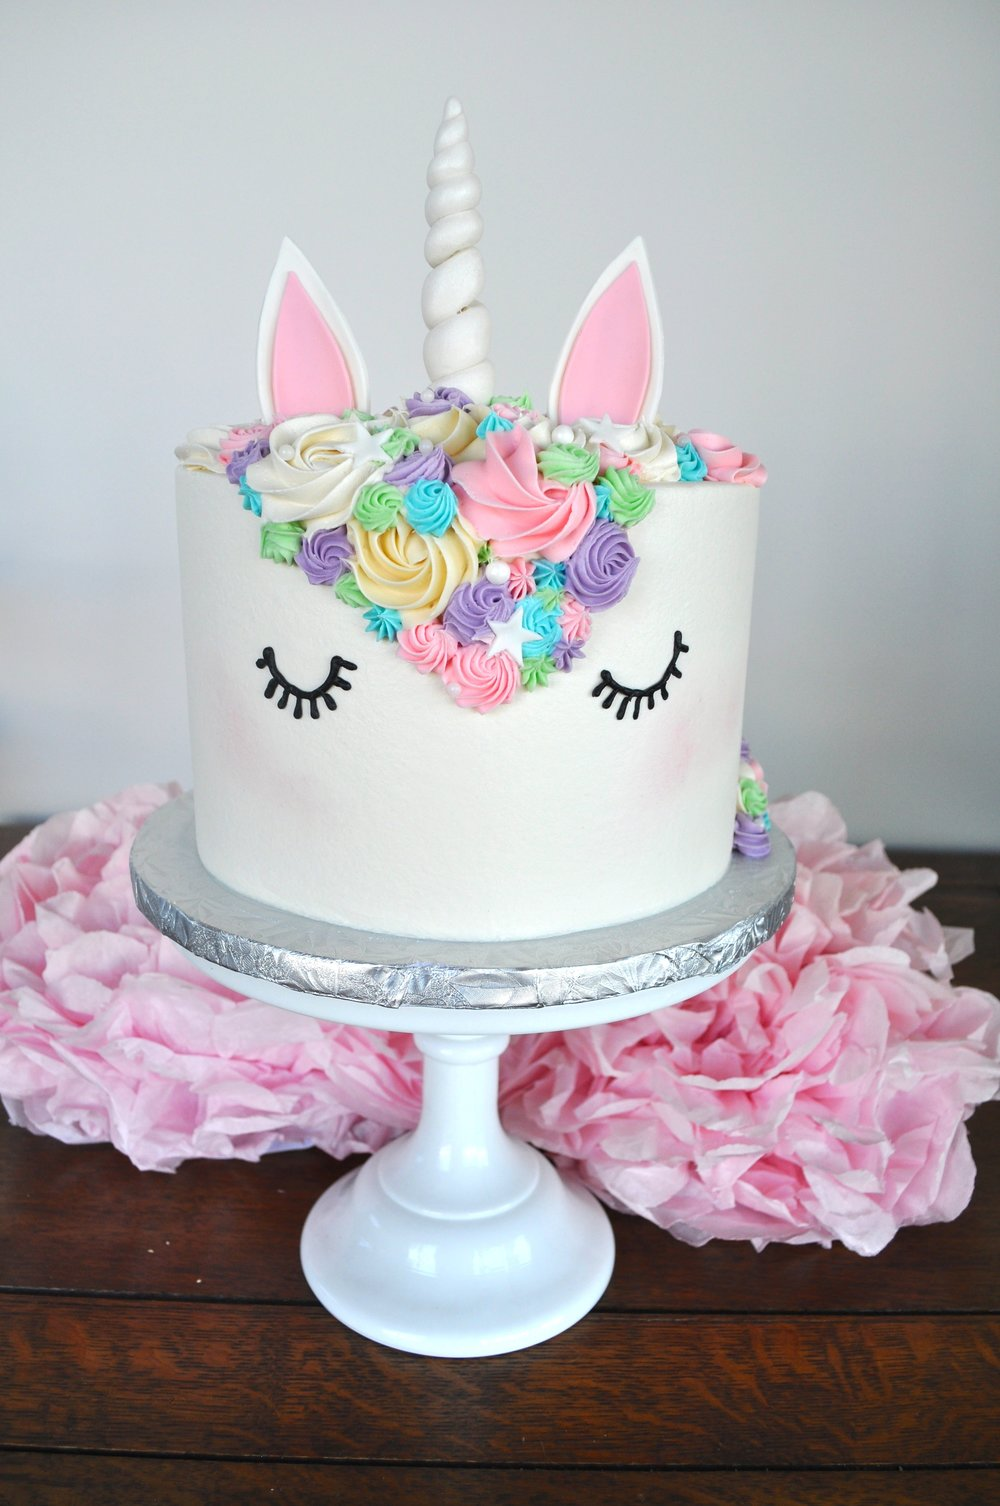 White Horn Unicorn Cake